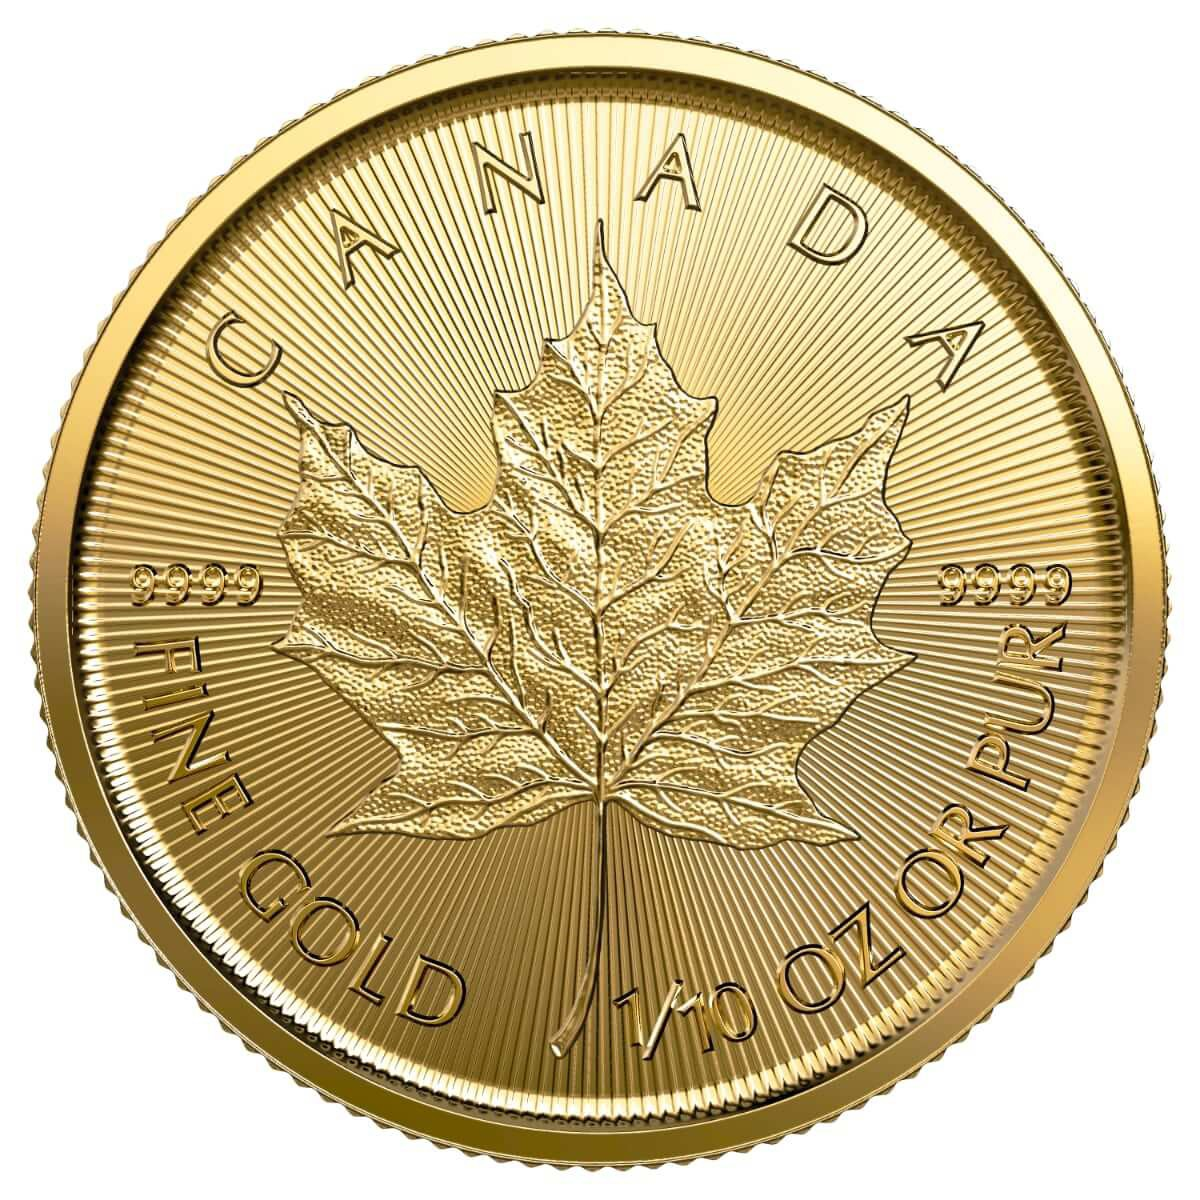 1/10 Ounce Gold Canadian Maple Leaf 2019